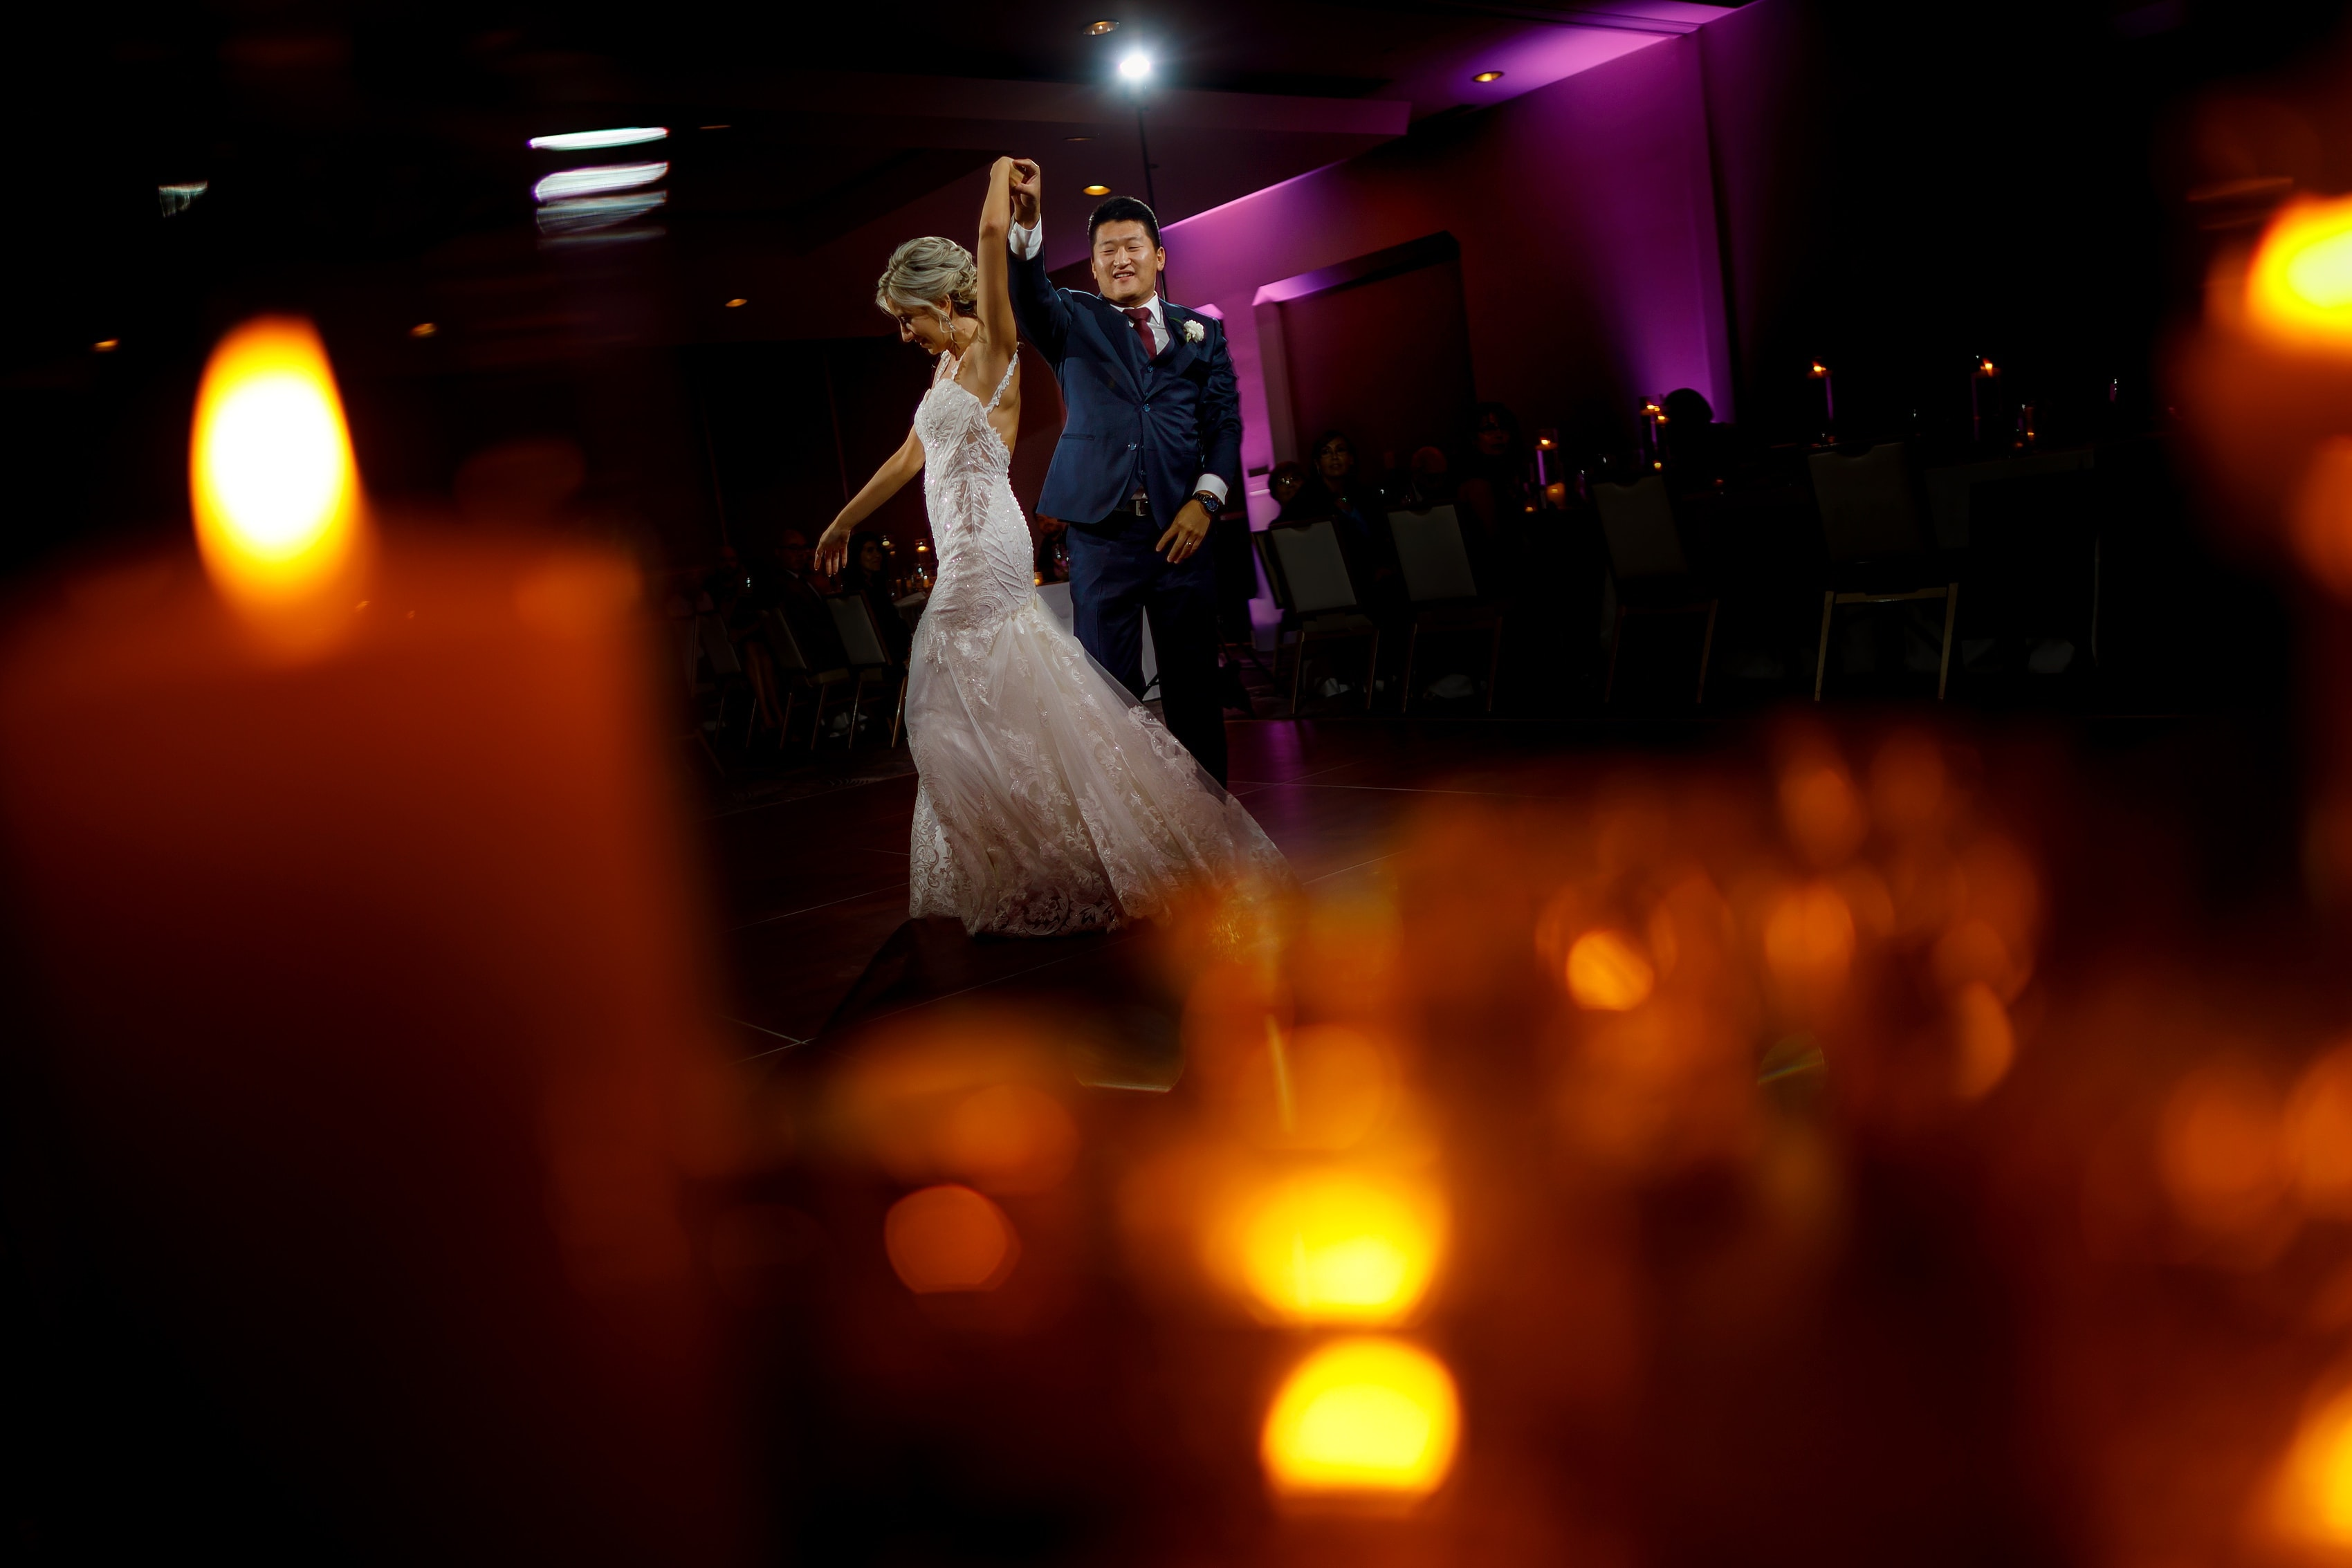 Bride and groom share first dance with purple uplighting and candle bokeh during wedding reception The Gwen Hotel in downtown Chicago